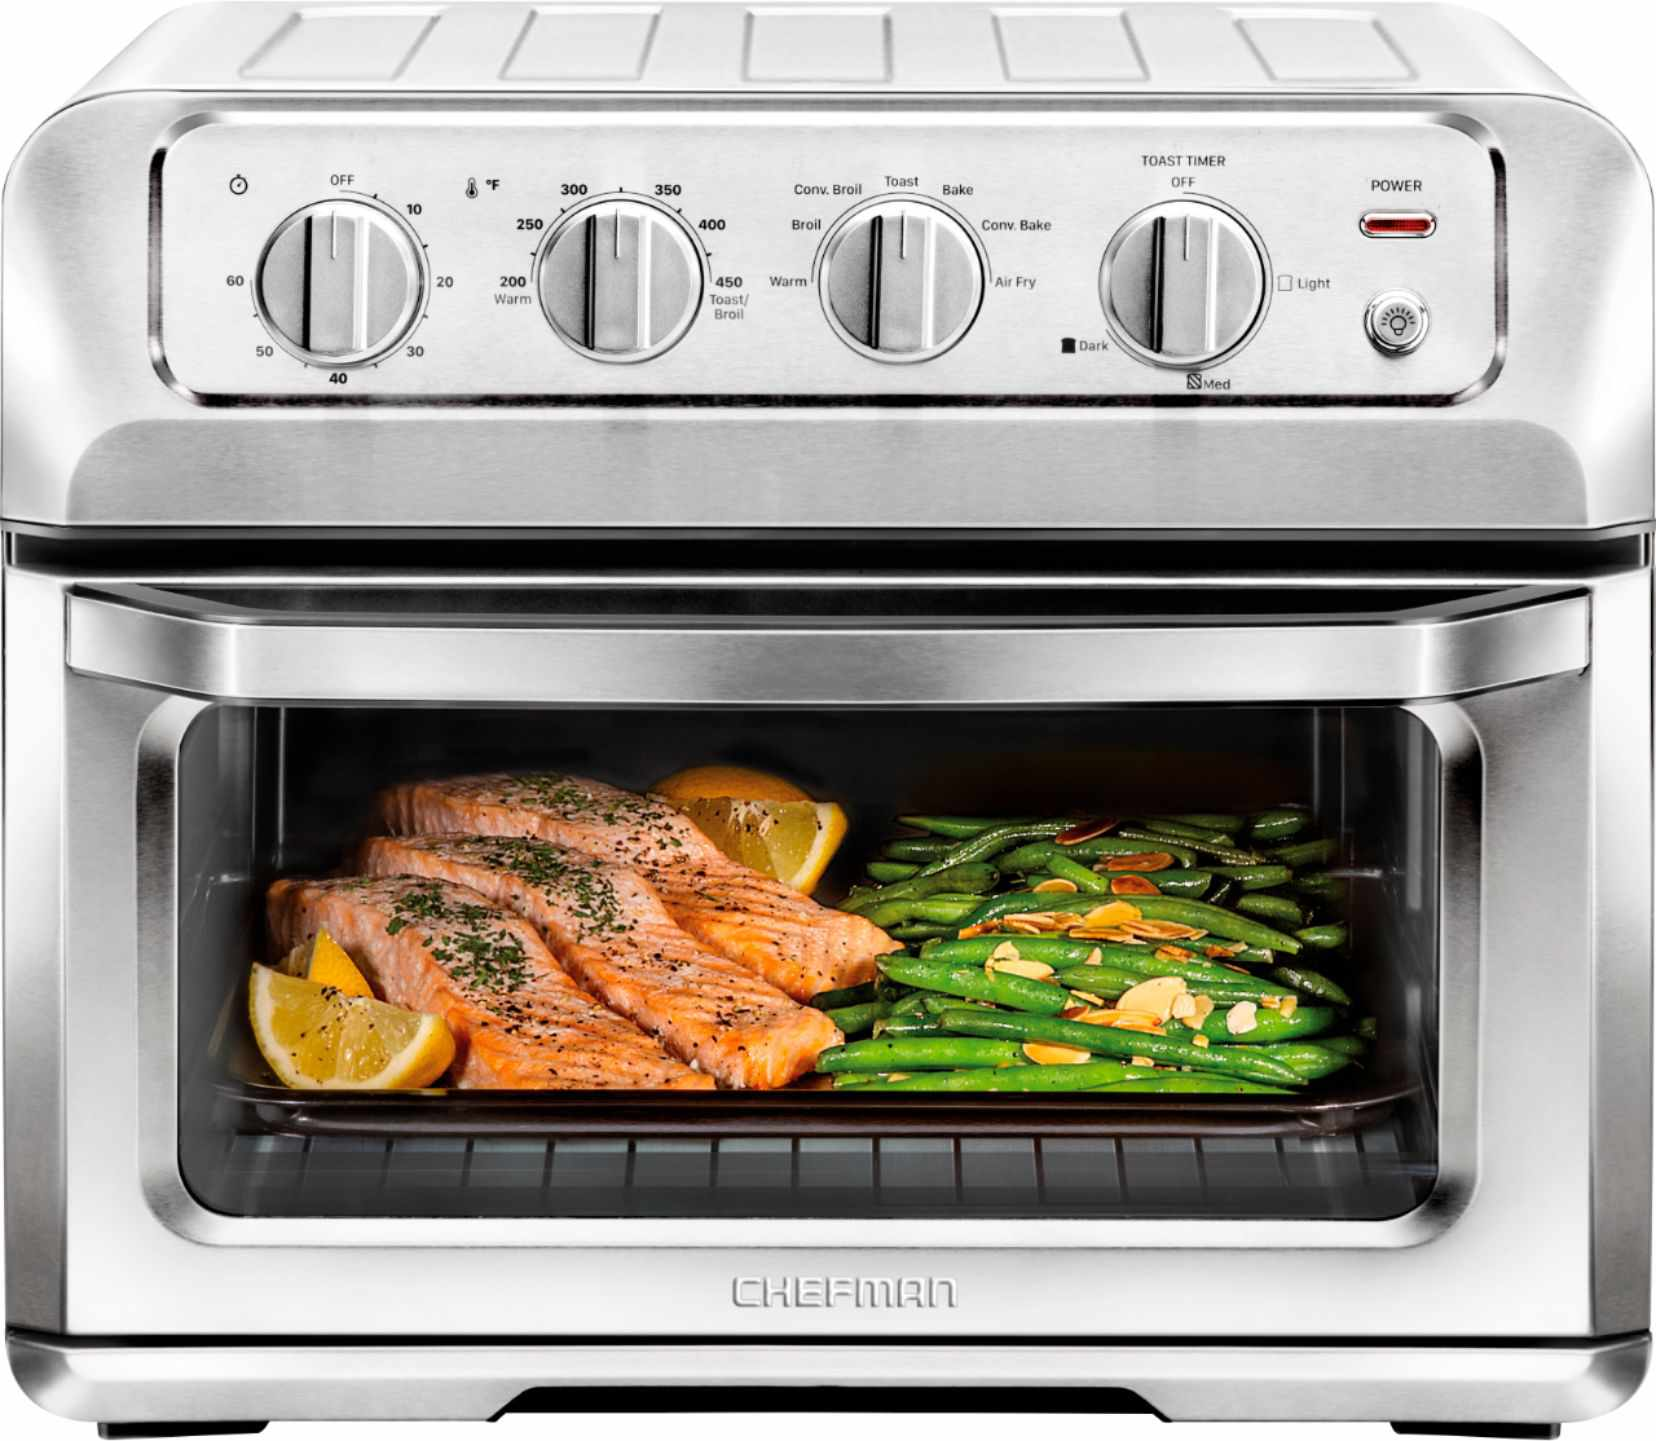 Chefman Toastair Air Fryer and Toaster Oven 20 Liter